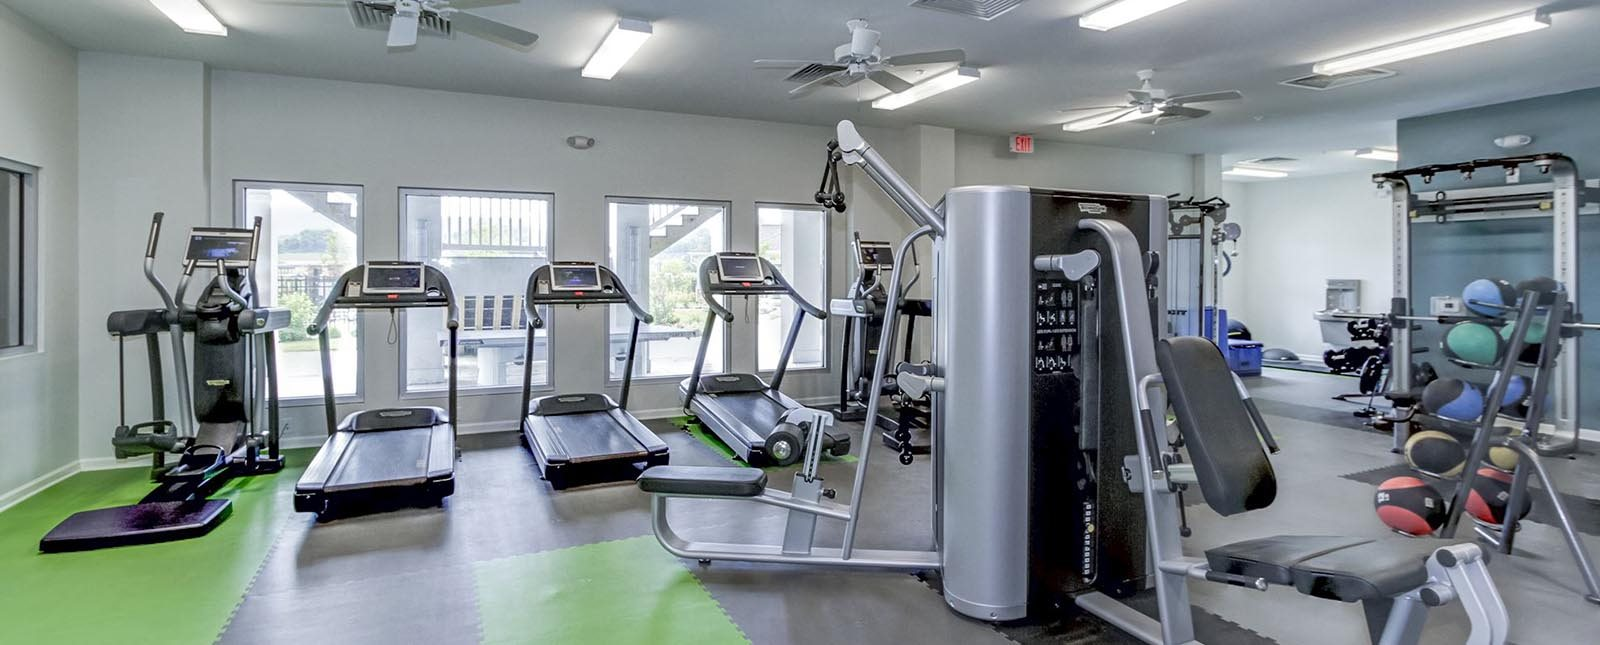 Fitness Center equipment of The Haven luxury apartments in Malvern, PA